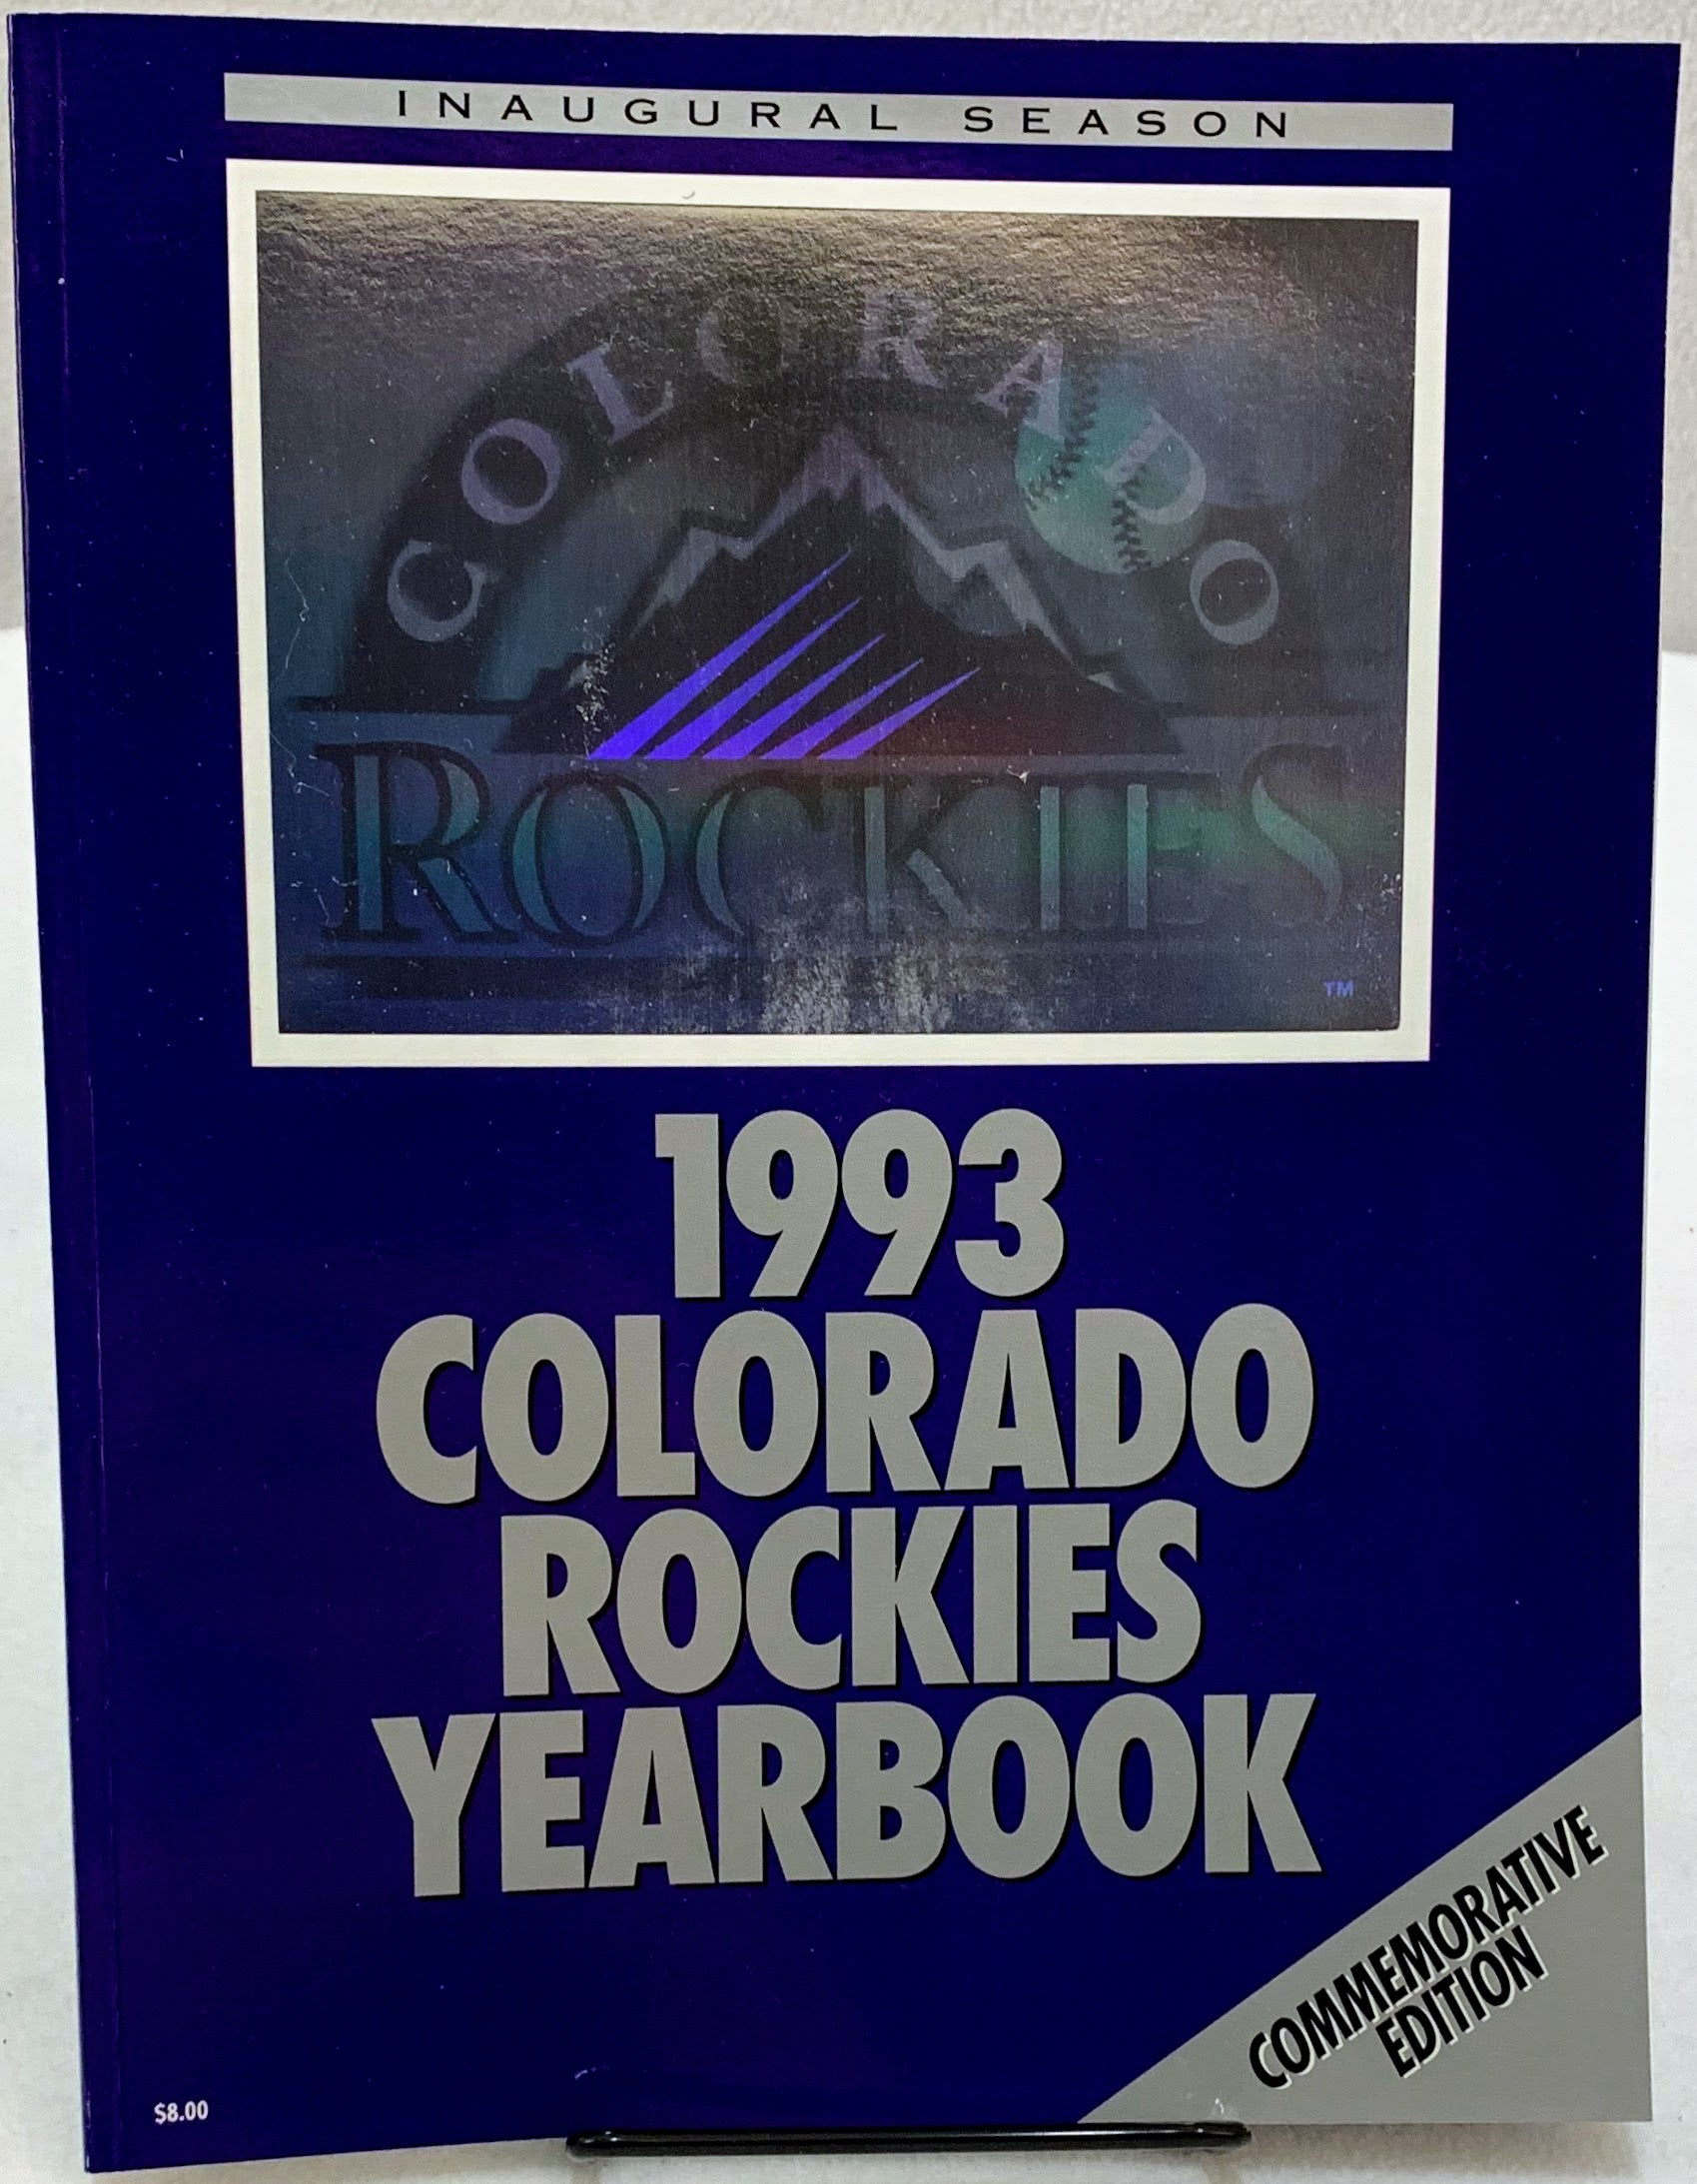 1993 Colorado Rockies Yearbook Commemorative Edition - Latitude Sports Marketing